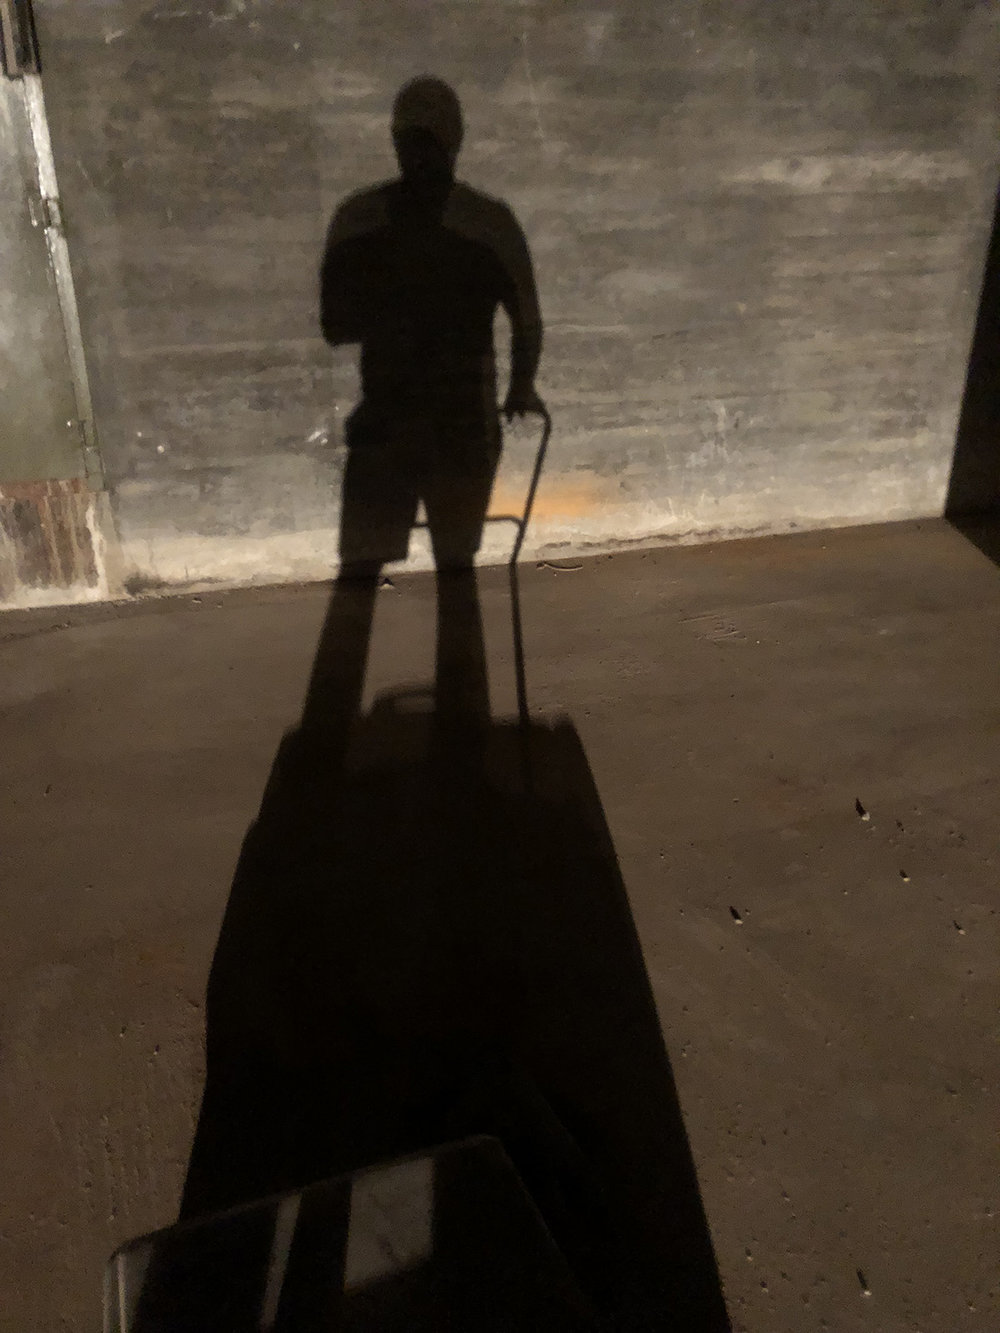 I personally swept every inch of the venue using this industrial push broom machine thing.. It was surprisingly relaxing and reminded me of being a kid sweeping out our barns on the farm.